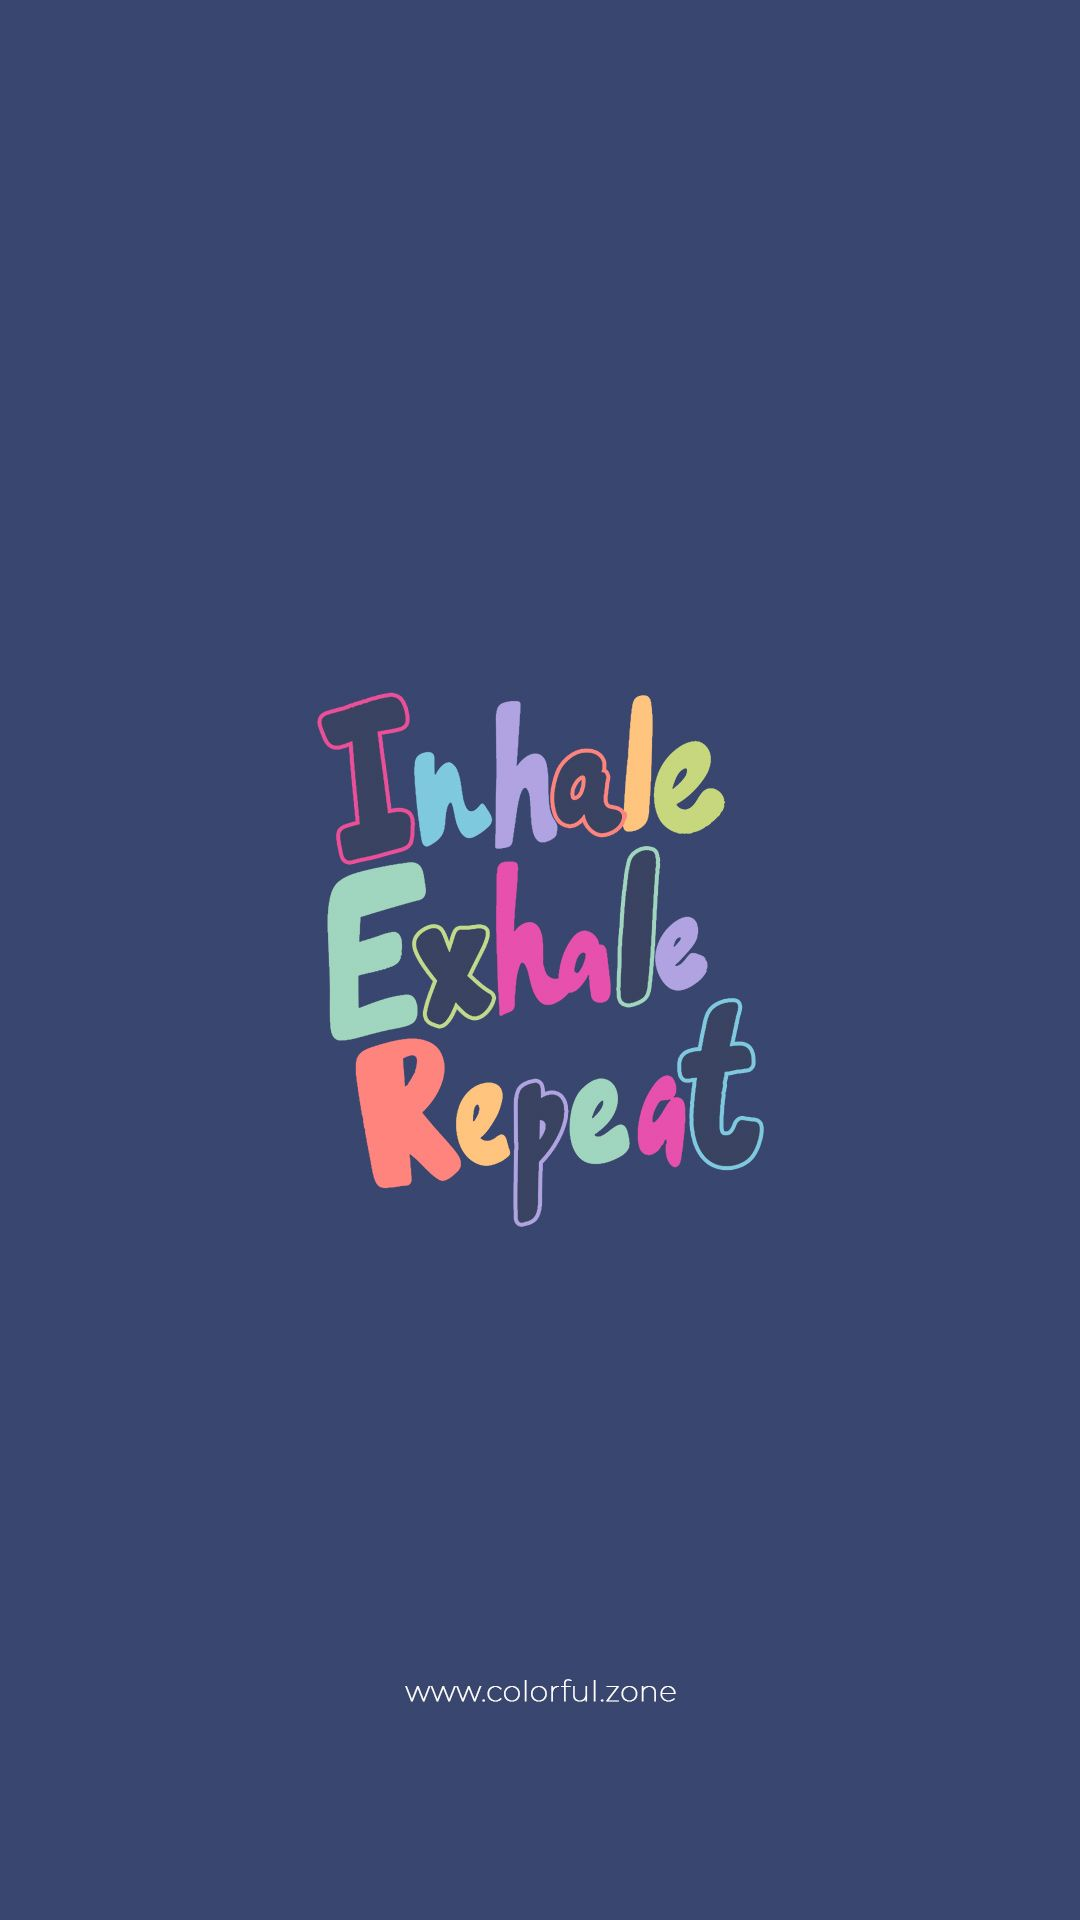 Free Colorful Smartphone Wallpaper - Inhale Exhale